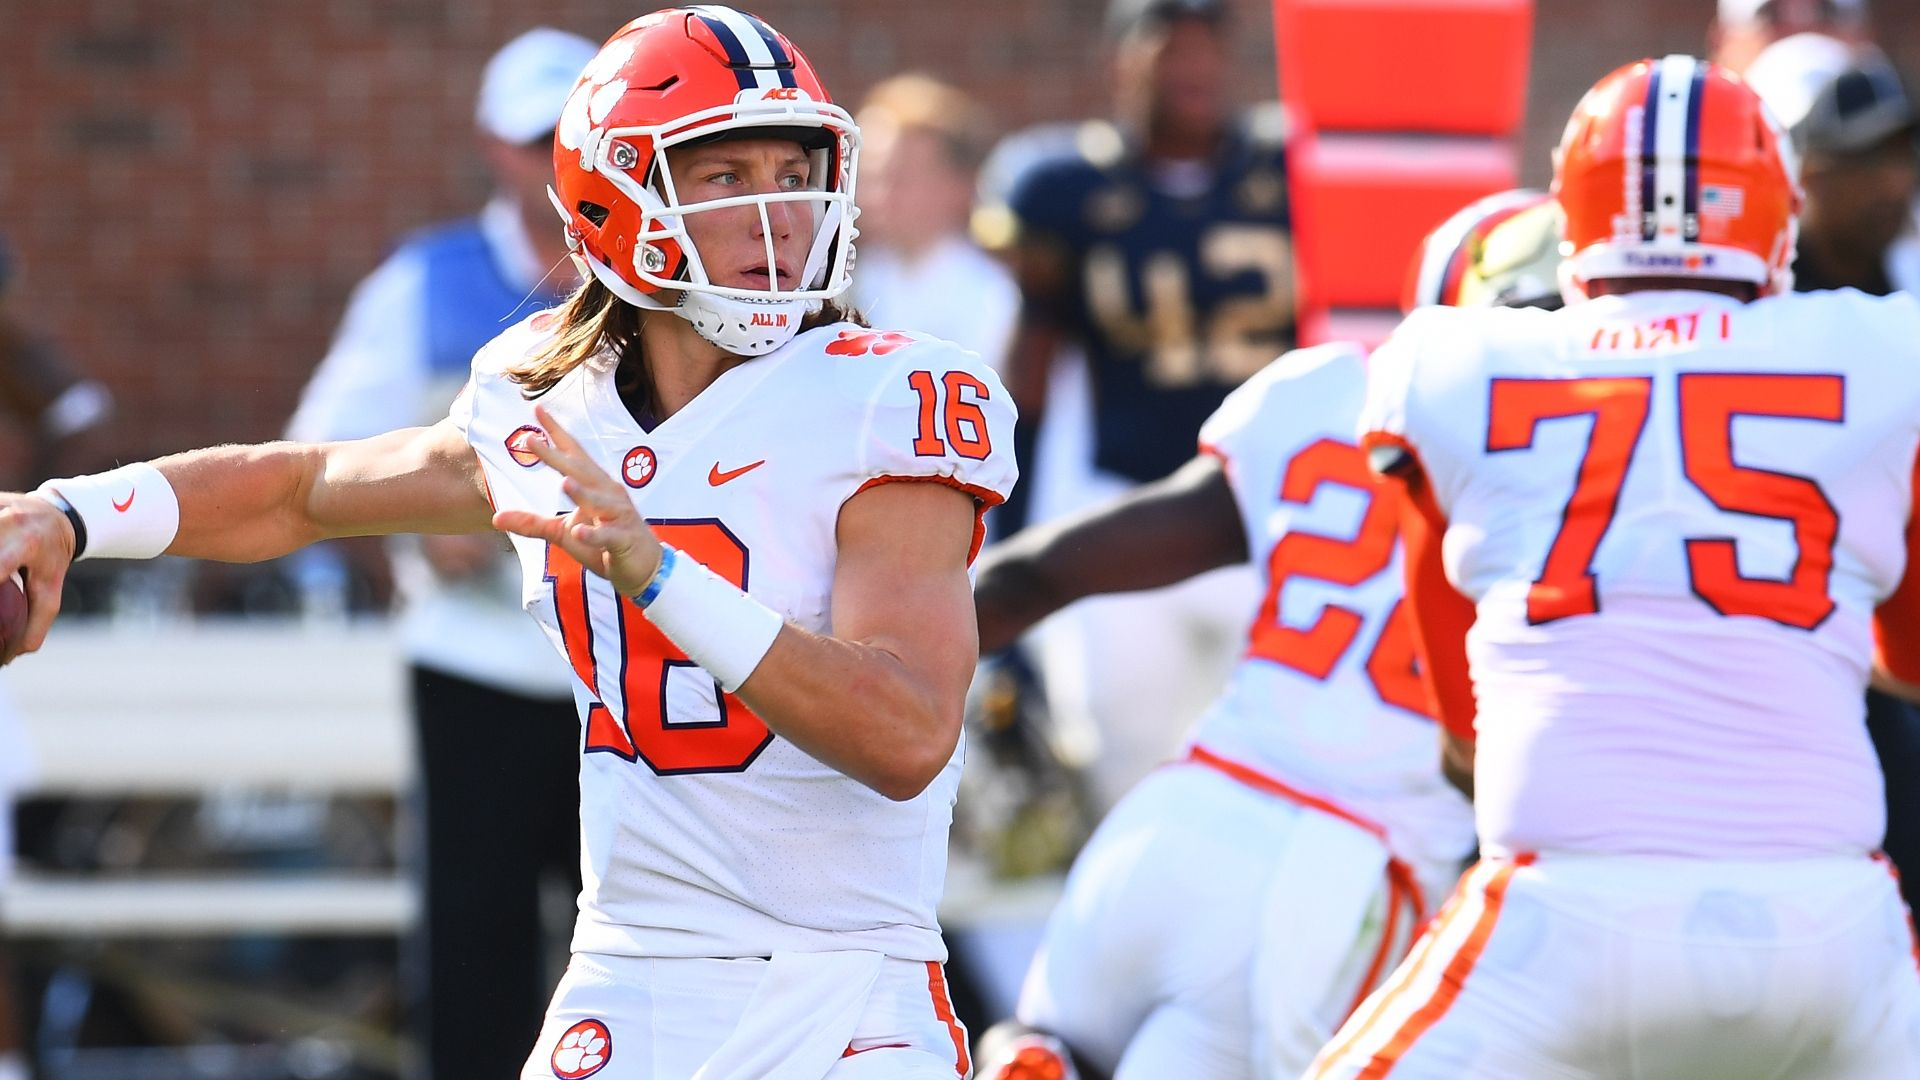 Lawrence fuels Clemson to another big win